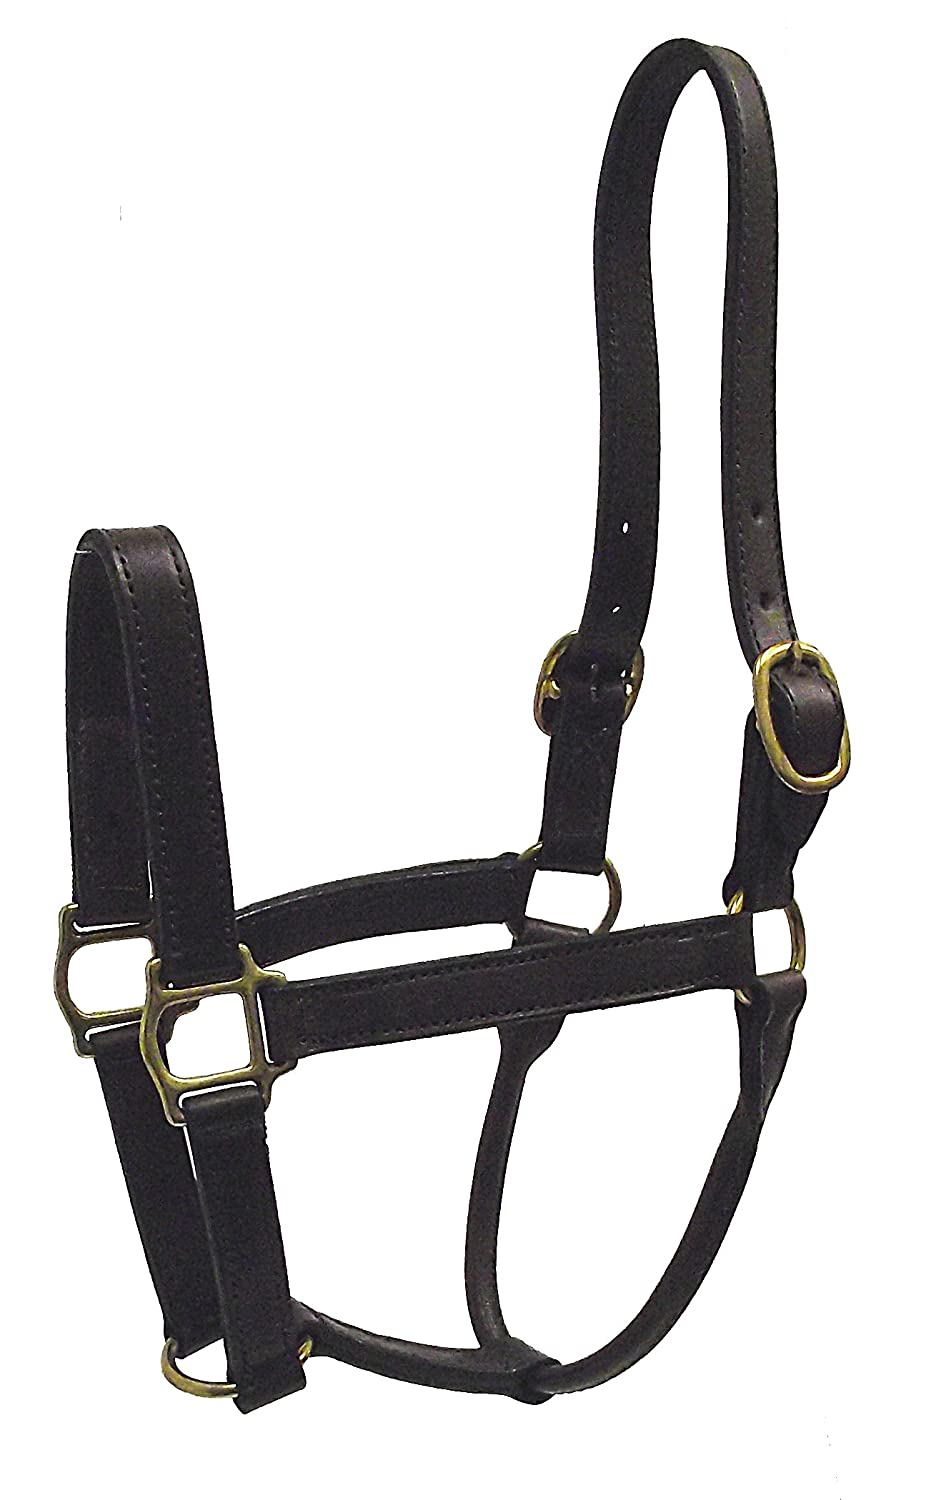 Havana Brown Yearling, 300-500 pounds Havana Brown Yearling, 300-500 pounds Hamilton 1-Inch Leather Deluxe Halter, Yearling Size, Fits 300 to 500-Pound, Havana Brown